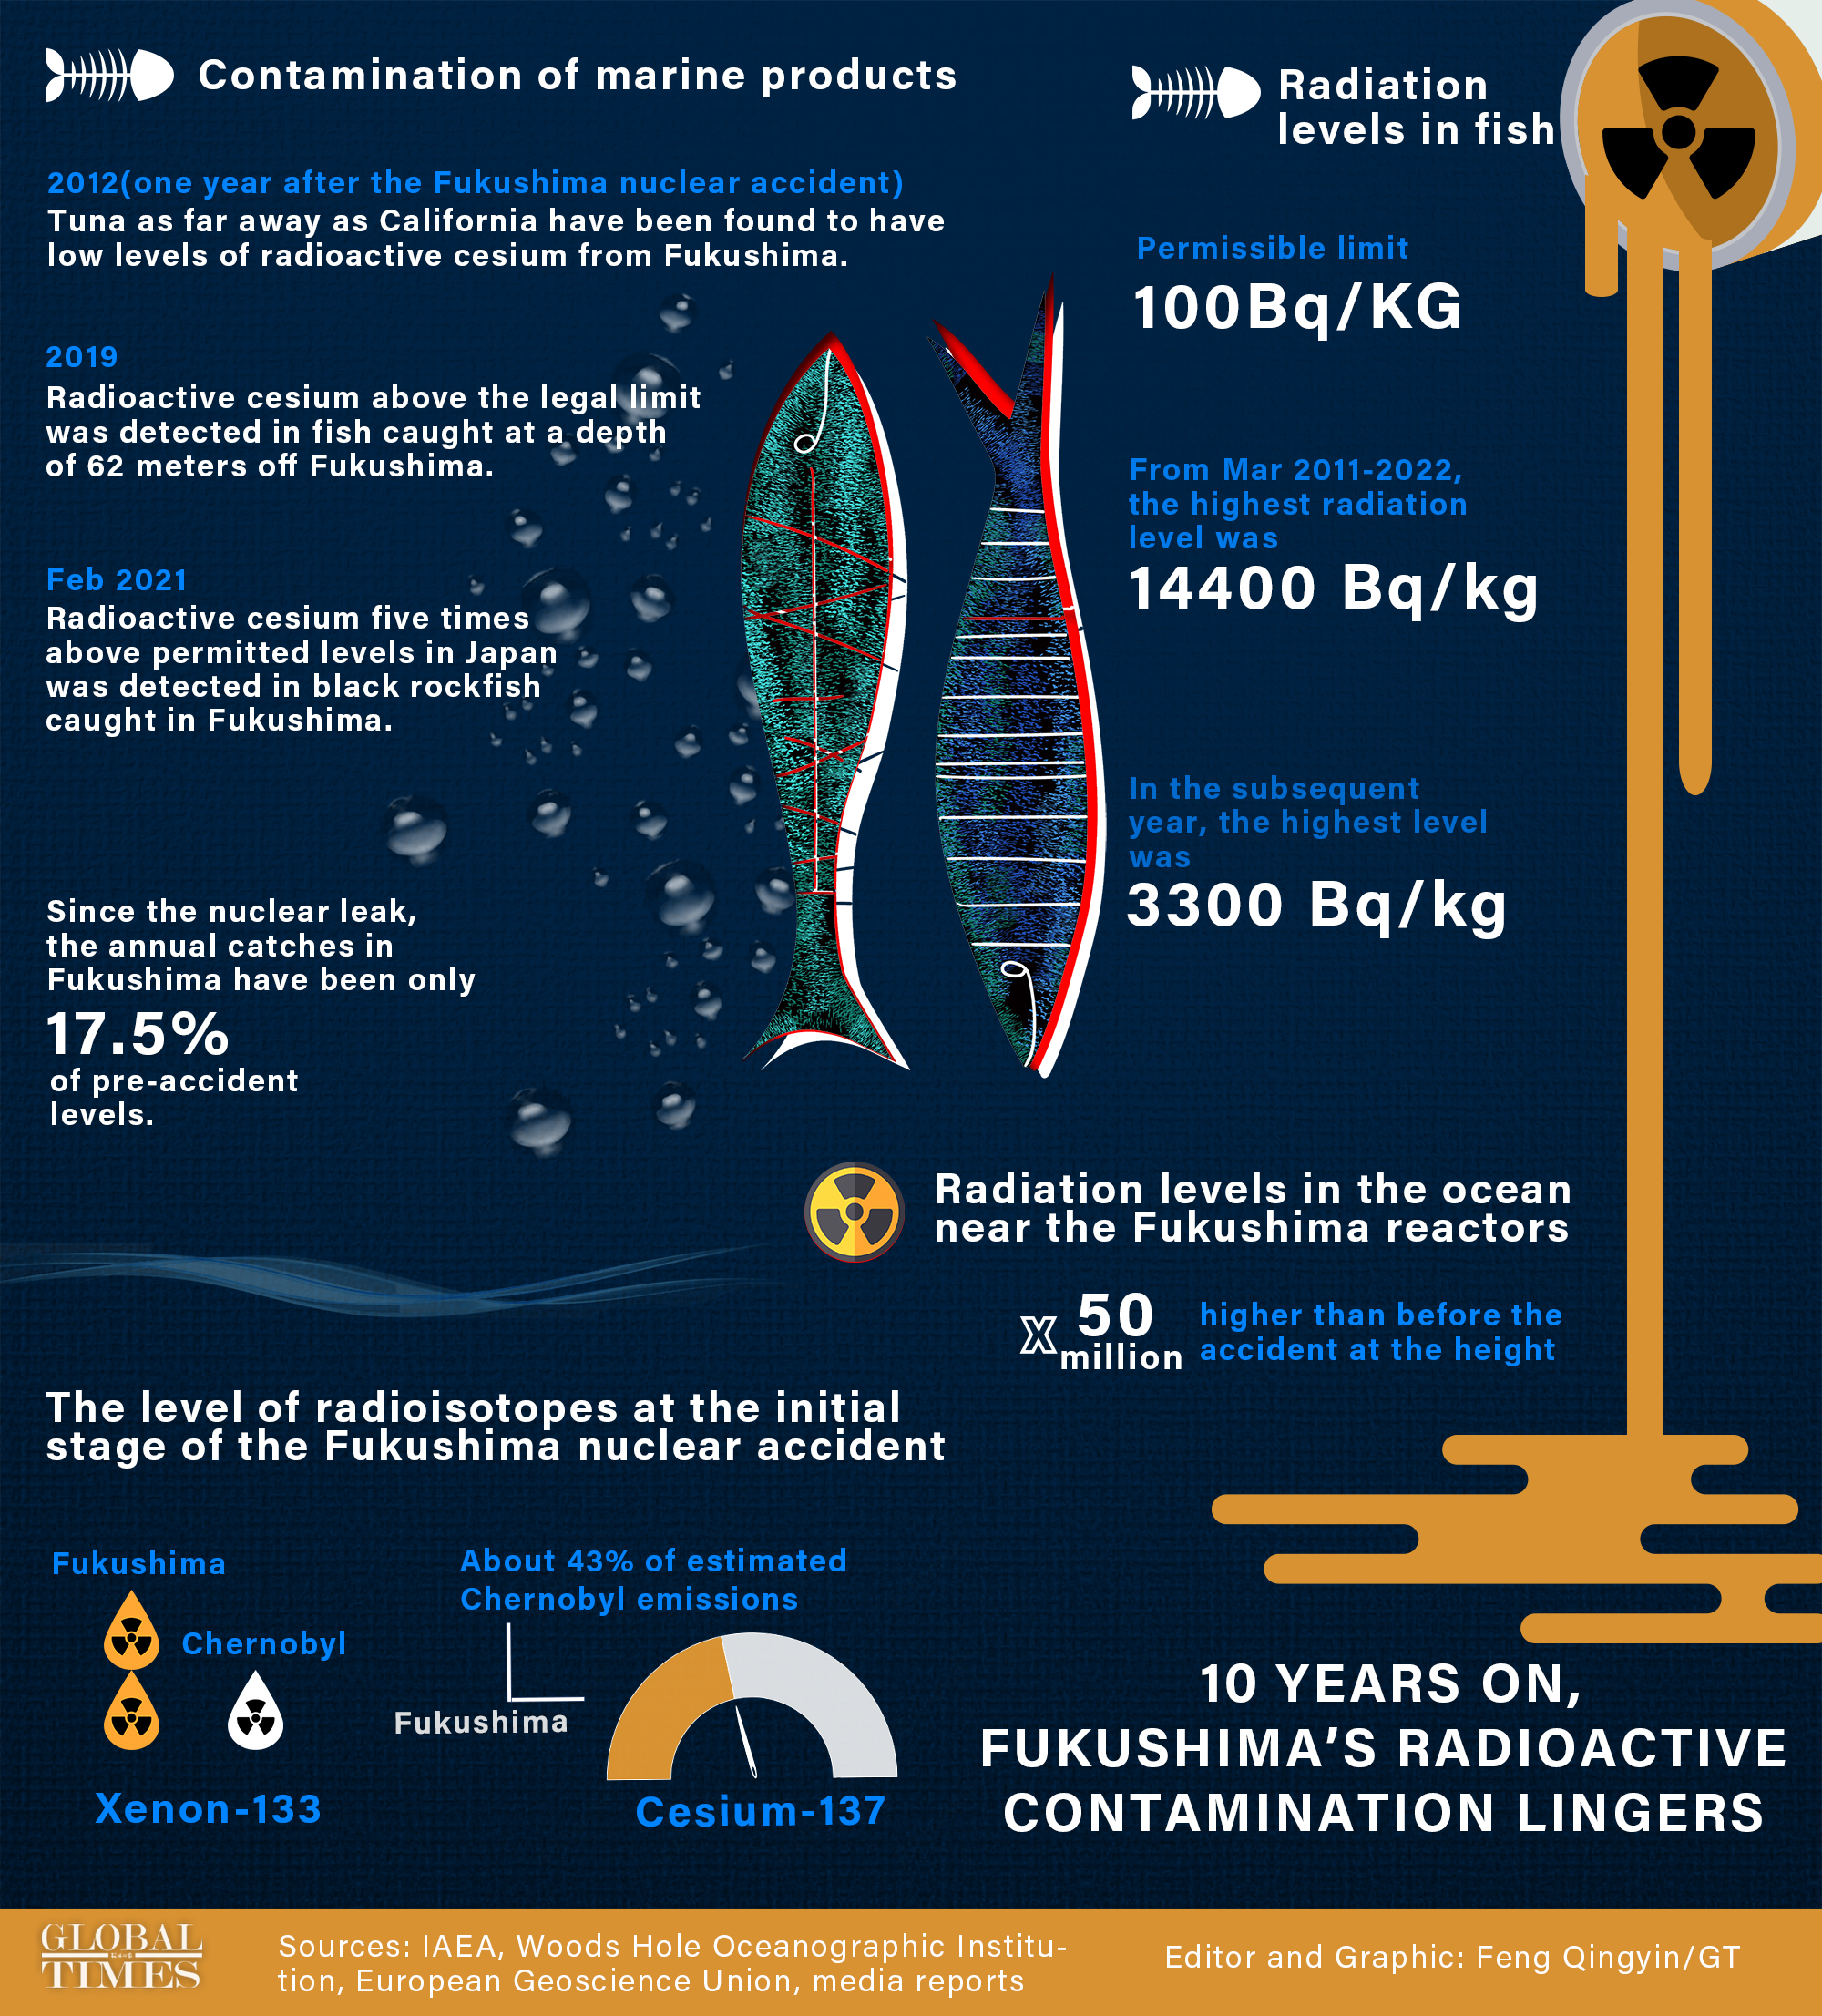 Ten years after the Fukushima nuclear accident, radiation-contaminated fish is still being found off Fukushima, showing the long-term impact of the accident. Japan's decision to dump nuclear wastewater will only add more uncertainties to the recovery of the marine environment.